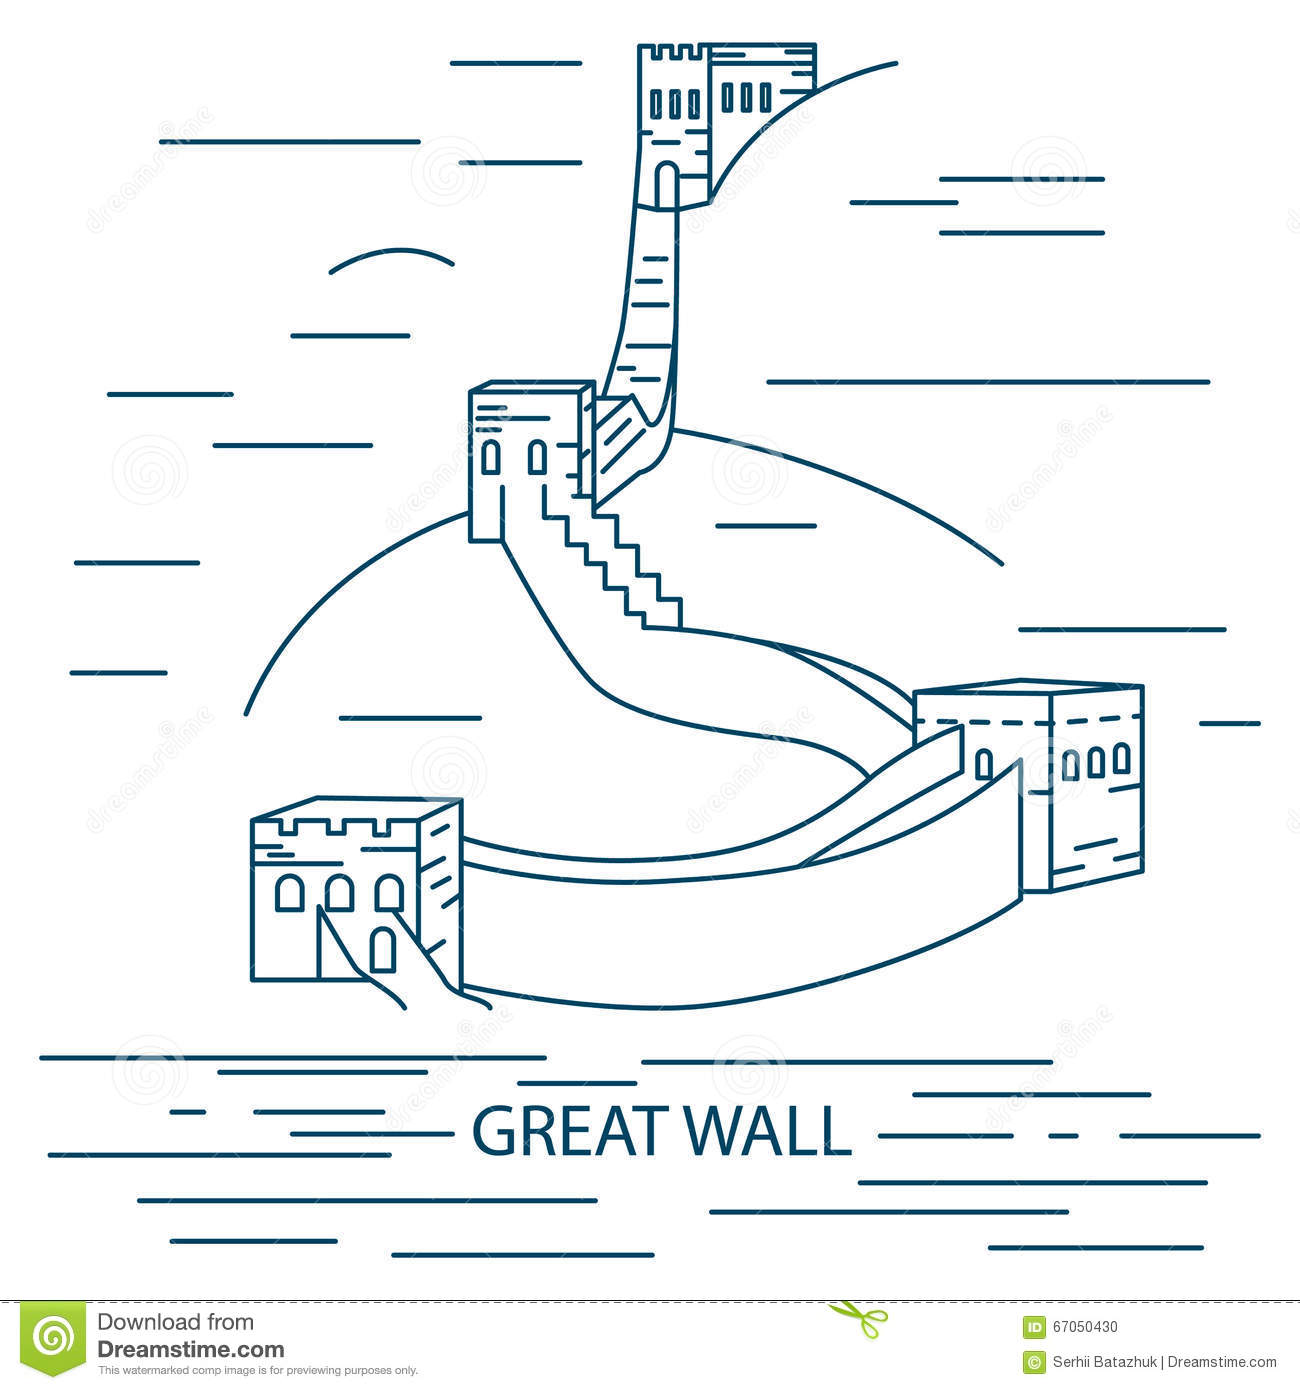 Line Art Illustration Style : Great wall of china trendy illustration line art style